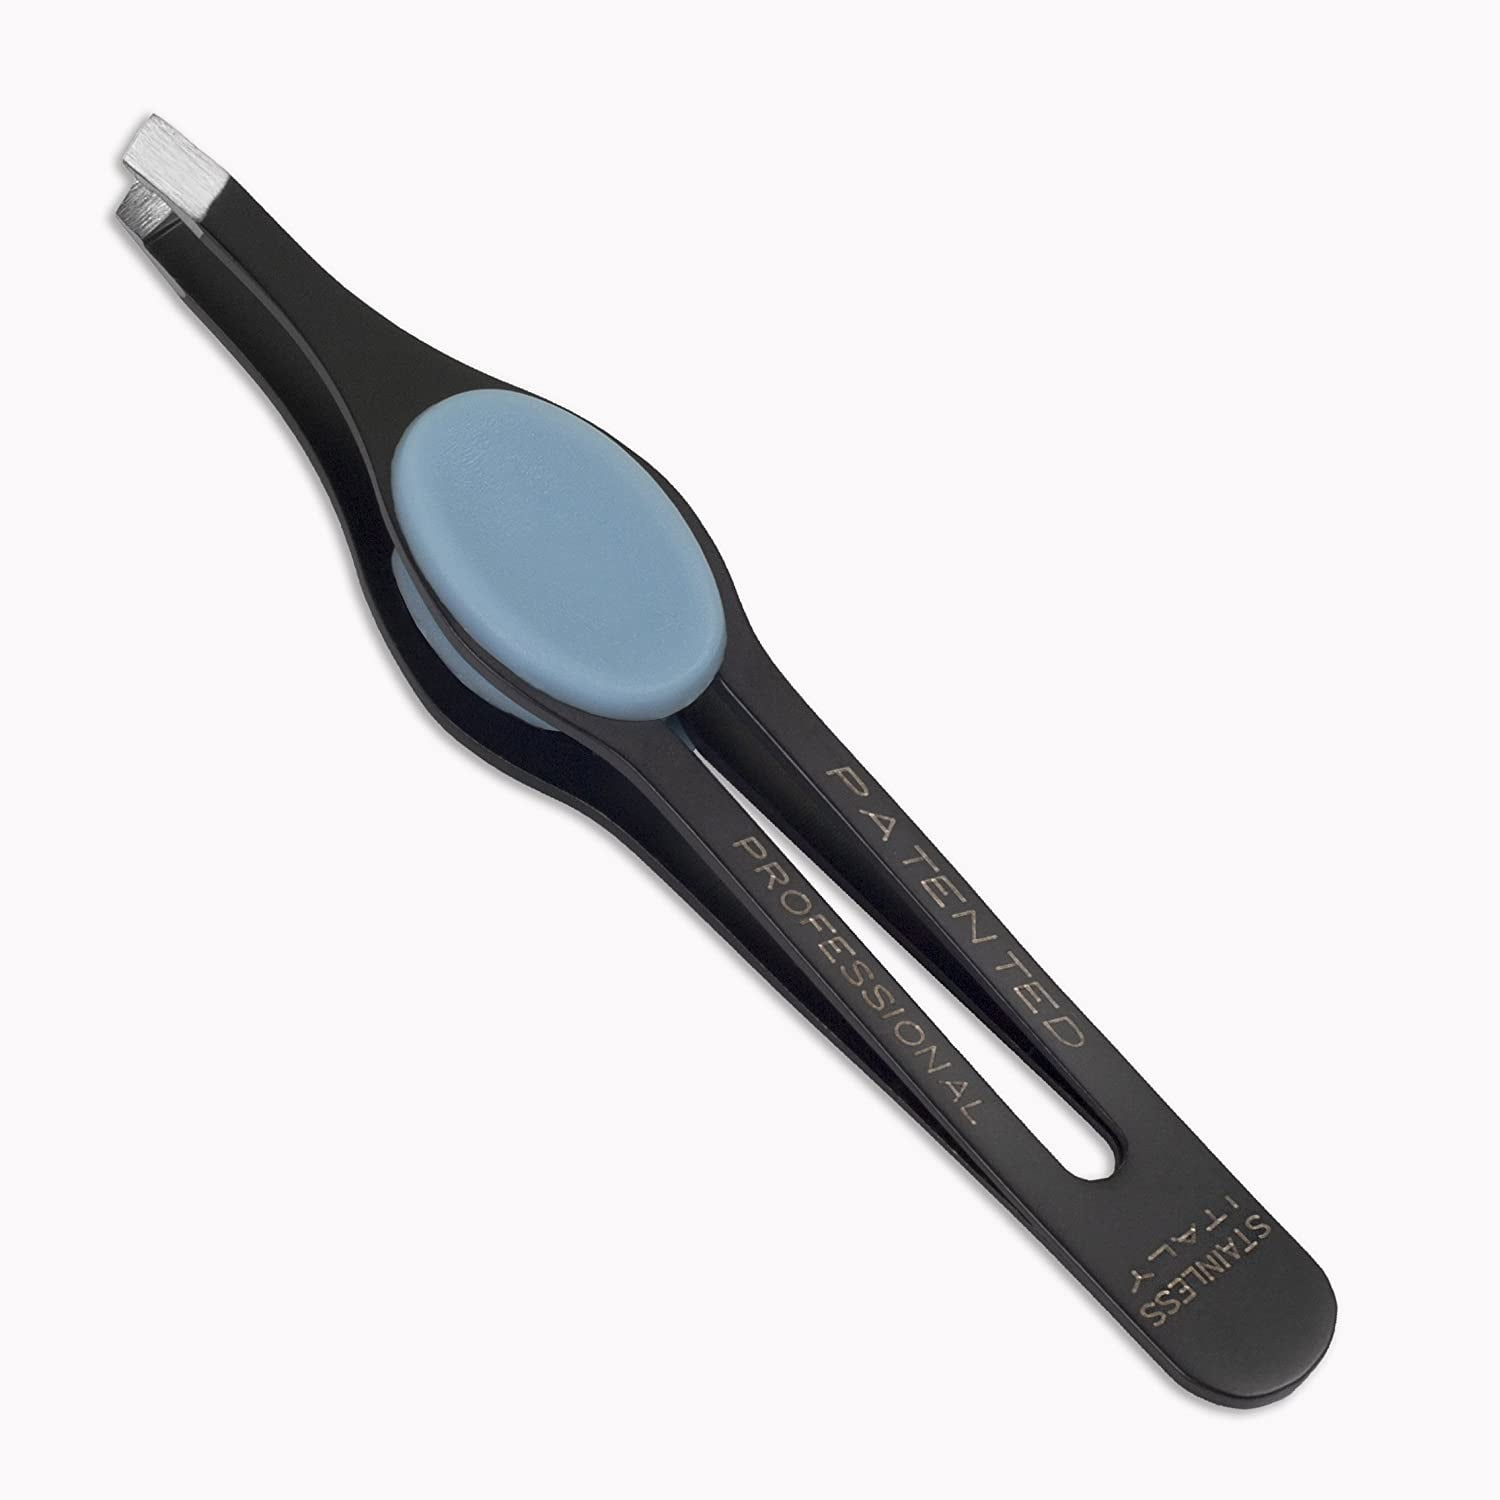 A pair of black tweezers with wide blue pads on the side for fingers to press on